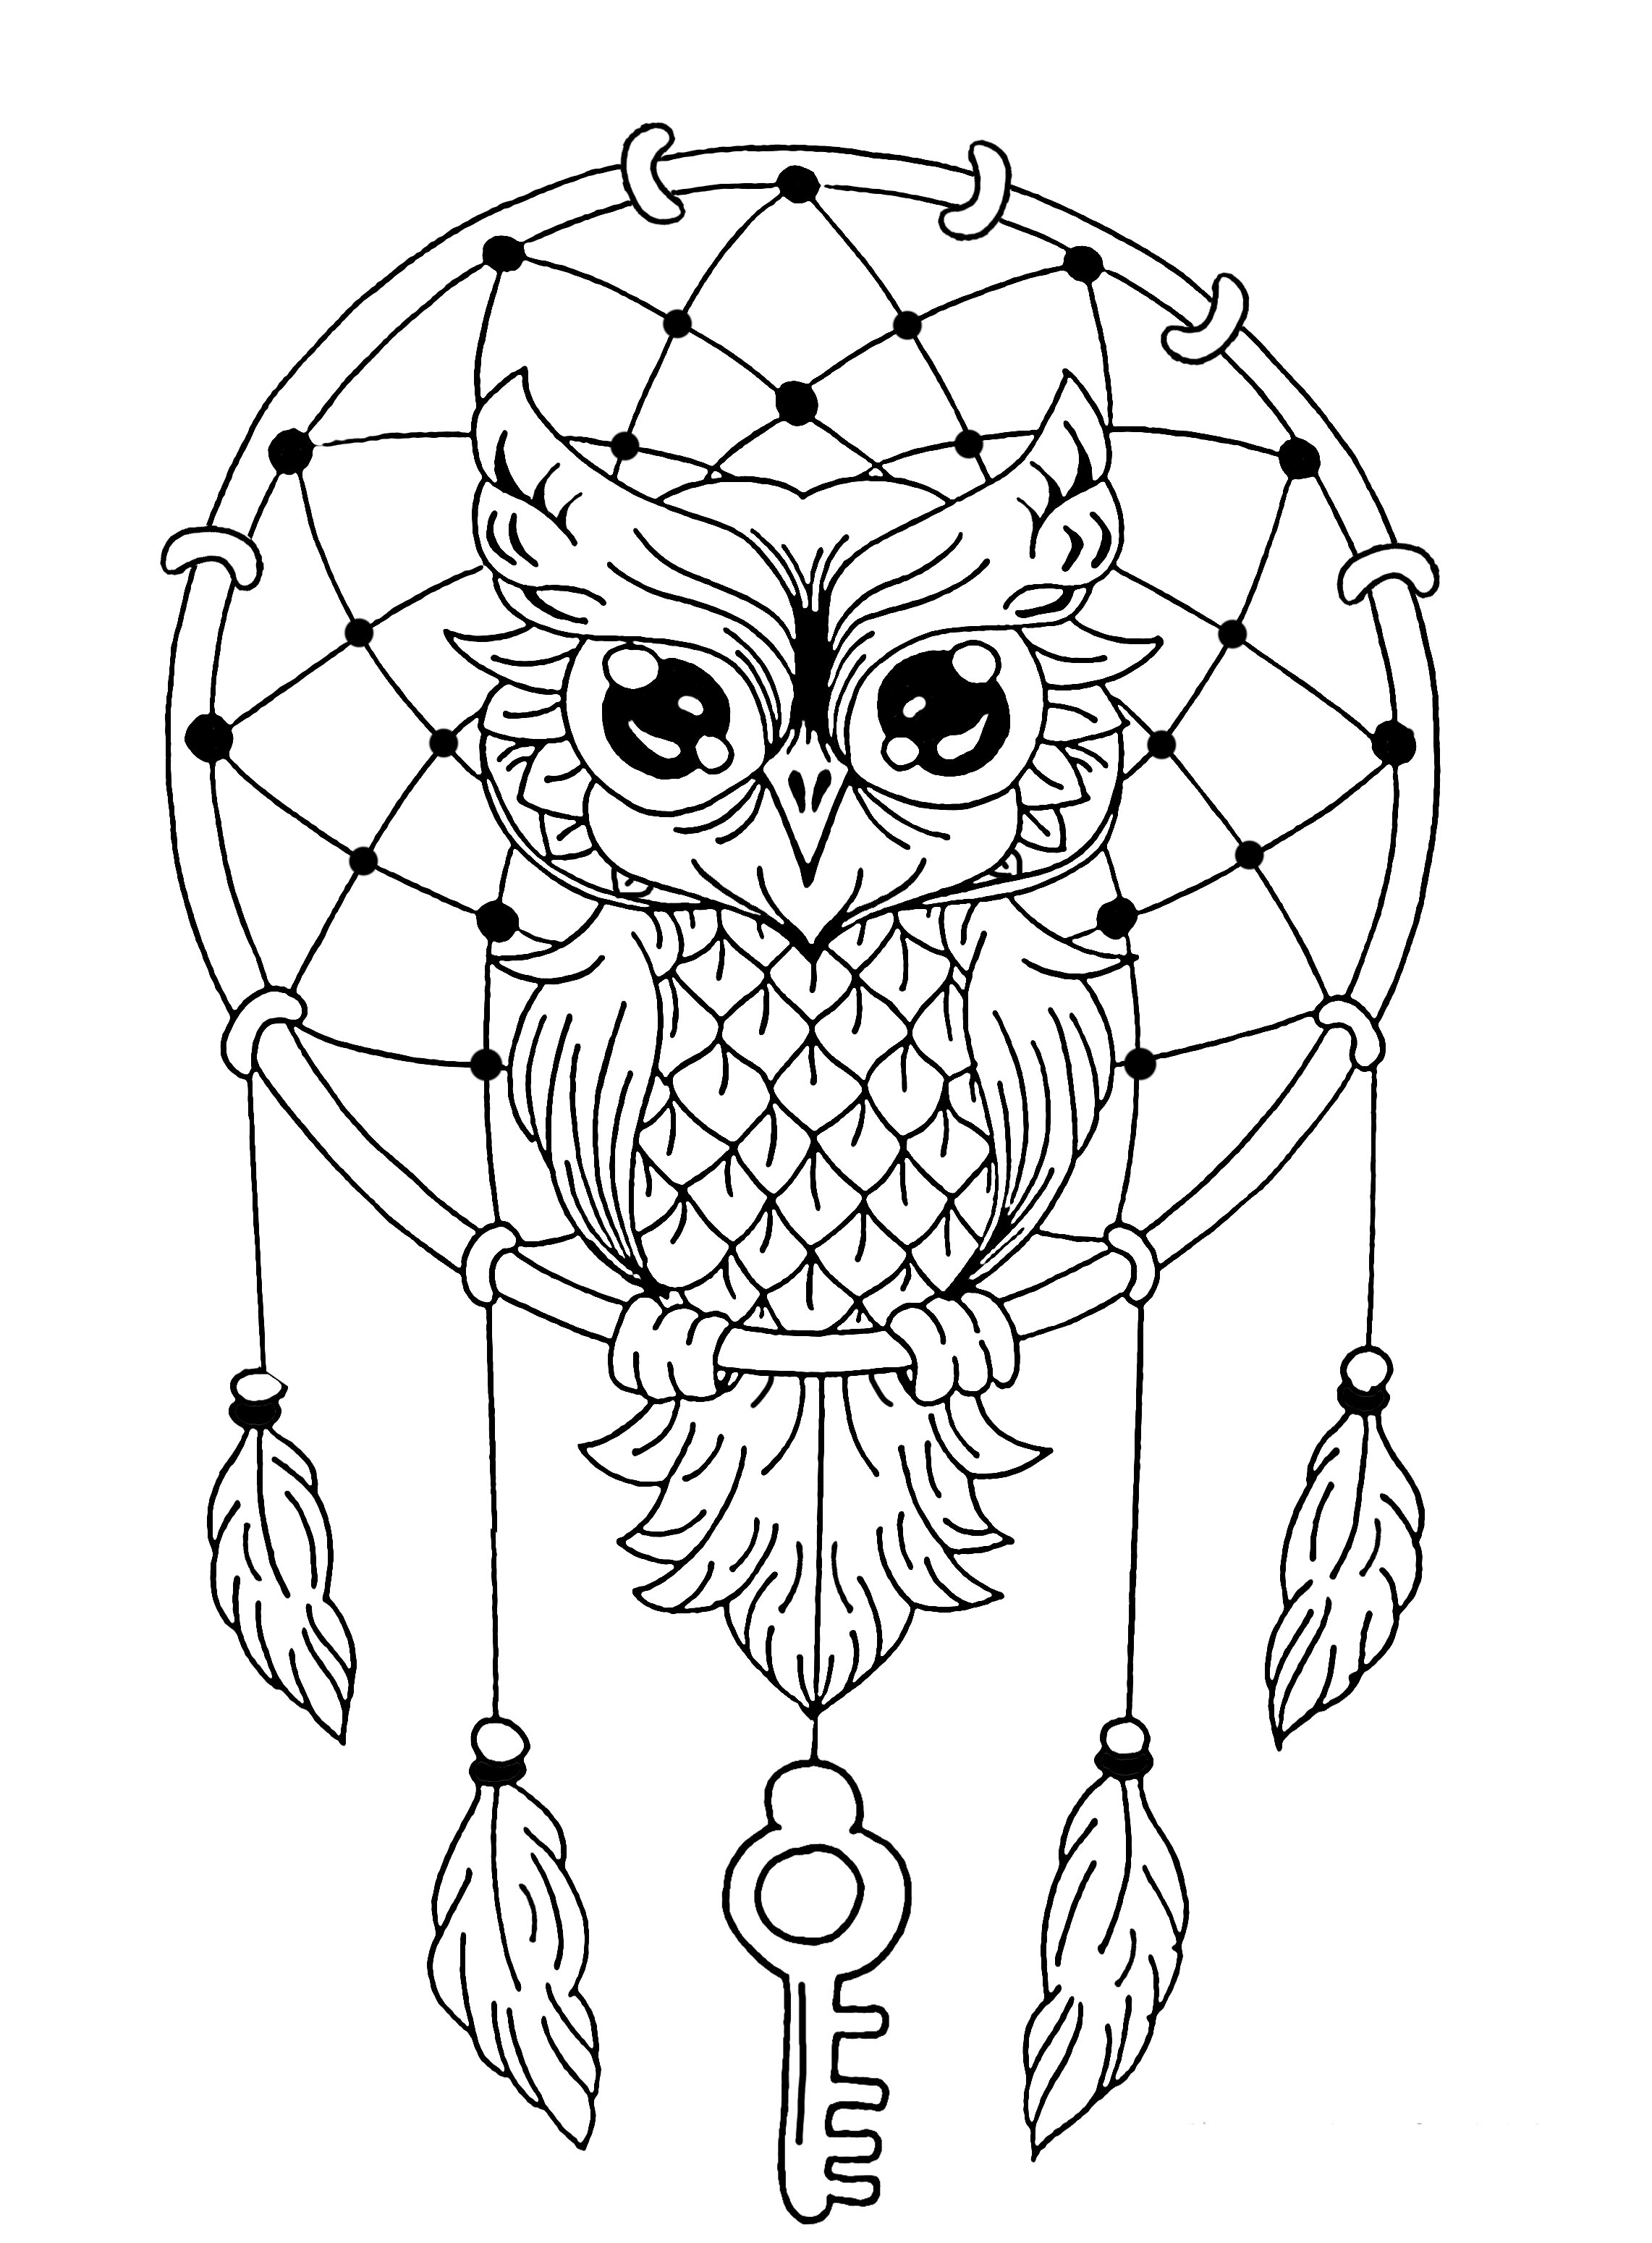 owl coloring page free printable owl coloring pages for kids cool2bkids page owl coloring